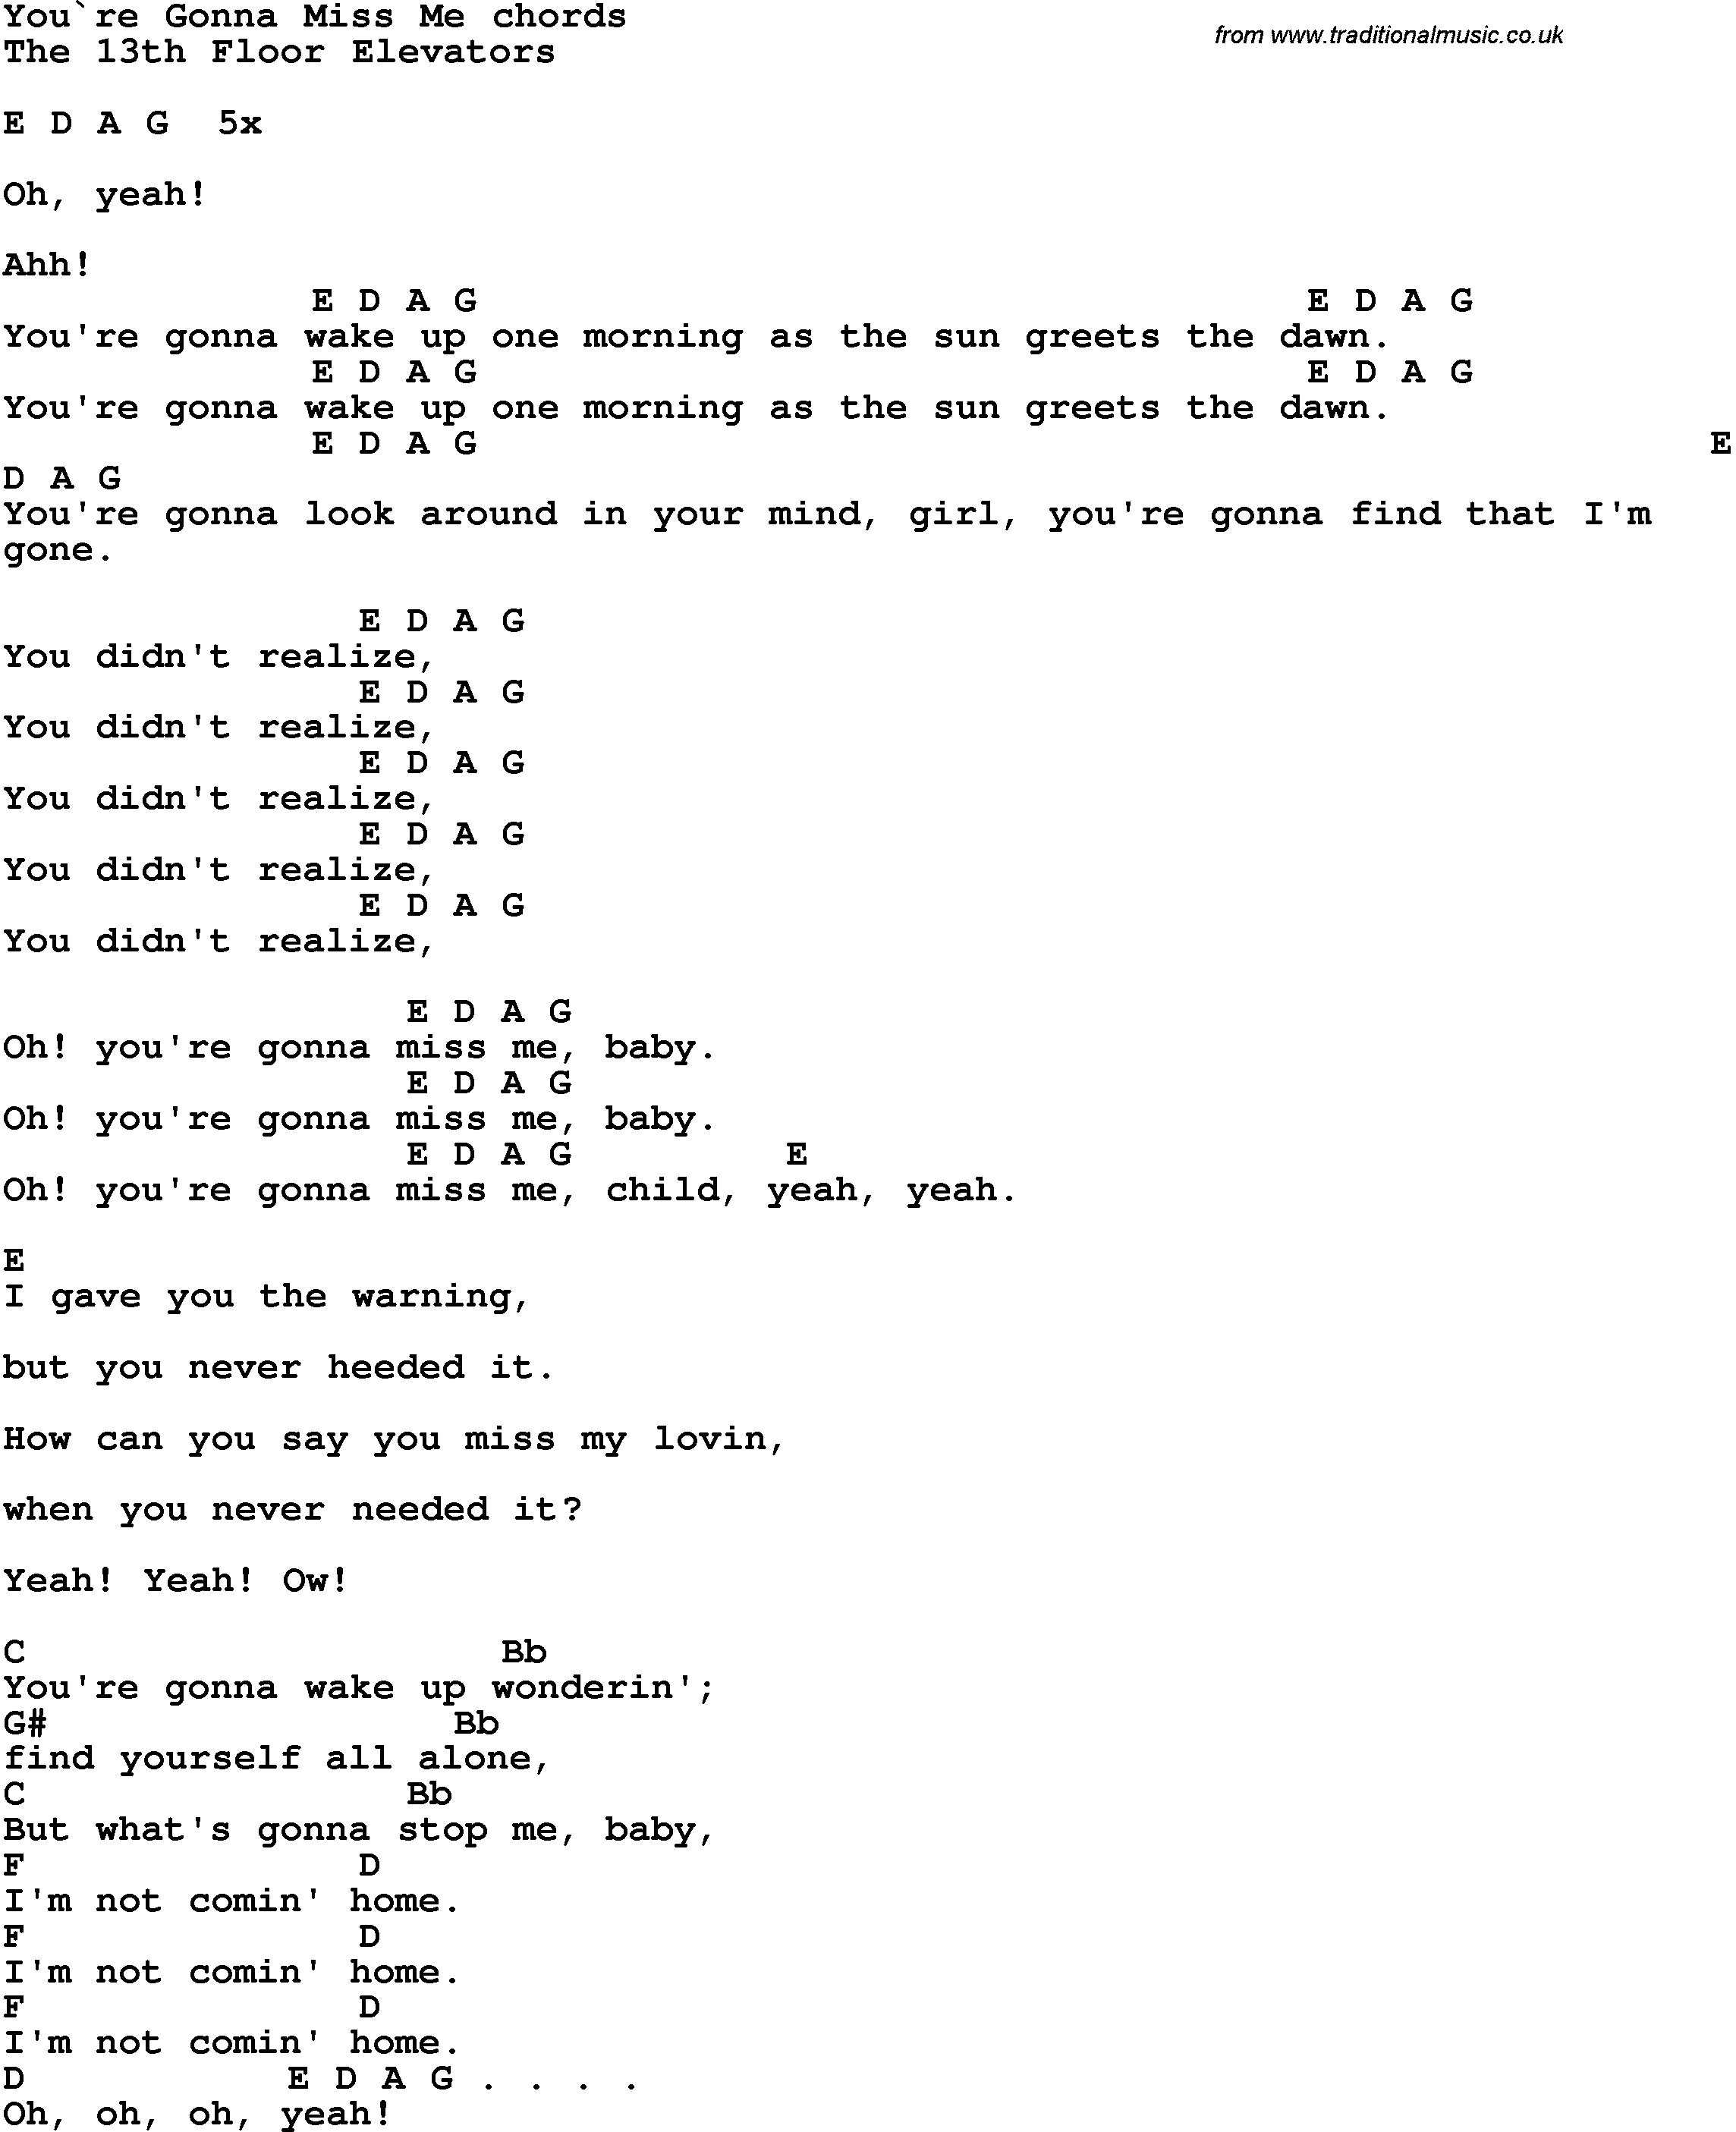 Song Lyrics With Guitar Chords For Youre Gonna Miss Me